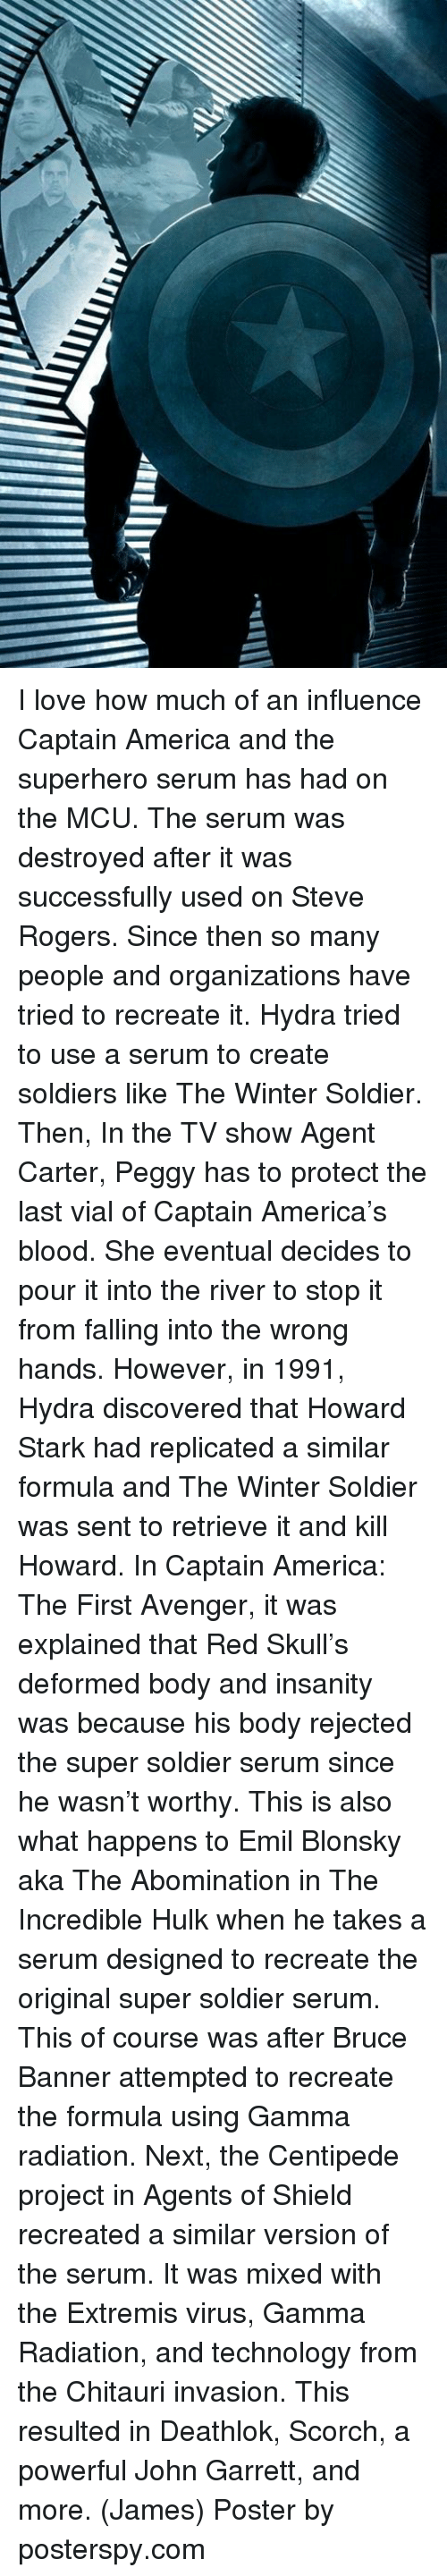 Senting: I love how much of an influence Captain America and the superhero serum has had on the MCU. The serum was destroyed after it was successfully used on Steve Rogers. Since then so many people and organizations have tried to recreate it.  Hydra tried to use a serum to create soldiers like The Winter Soldier. Then, In the TV show Agent Carter, Peggy has to protect the last vial of Captain America's blood. She eventual decides to pour it into the river to stop it from falling into the wrong hands. However, in 1991, Hydra discovered that Howard Stark had replicated a similar formula and The Winter Soldier was sent to retrieve it and kill Howard.   In Captain America: The First Avenger, it was explained that Red Skull's deformed body and insanity was because his body rejected the super soldier serum since he wasn't worthy. This is also what happens to Emil Blonsky aka The Abomination in The Incredible Hulk when he takes a serum designed to recreate the original super soldier serum. This of course was after Bruce Banner attempted to recreate the formula using Gamma radiation.   Next, the Centipede project in Agents of Shield recreated a similar version of the serum. It was mixed with the Extremis virus, Gamma Radiation, and technology from the Chitauri invasion. This resulted in Deathlok, Scorch, a powerful John Garrett, and more.  (James)  Poster by posterspy.com